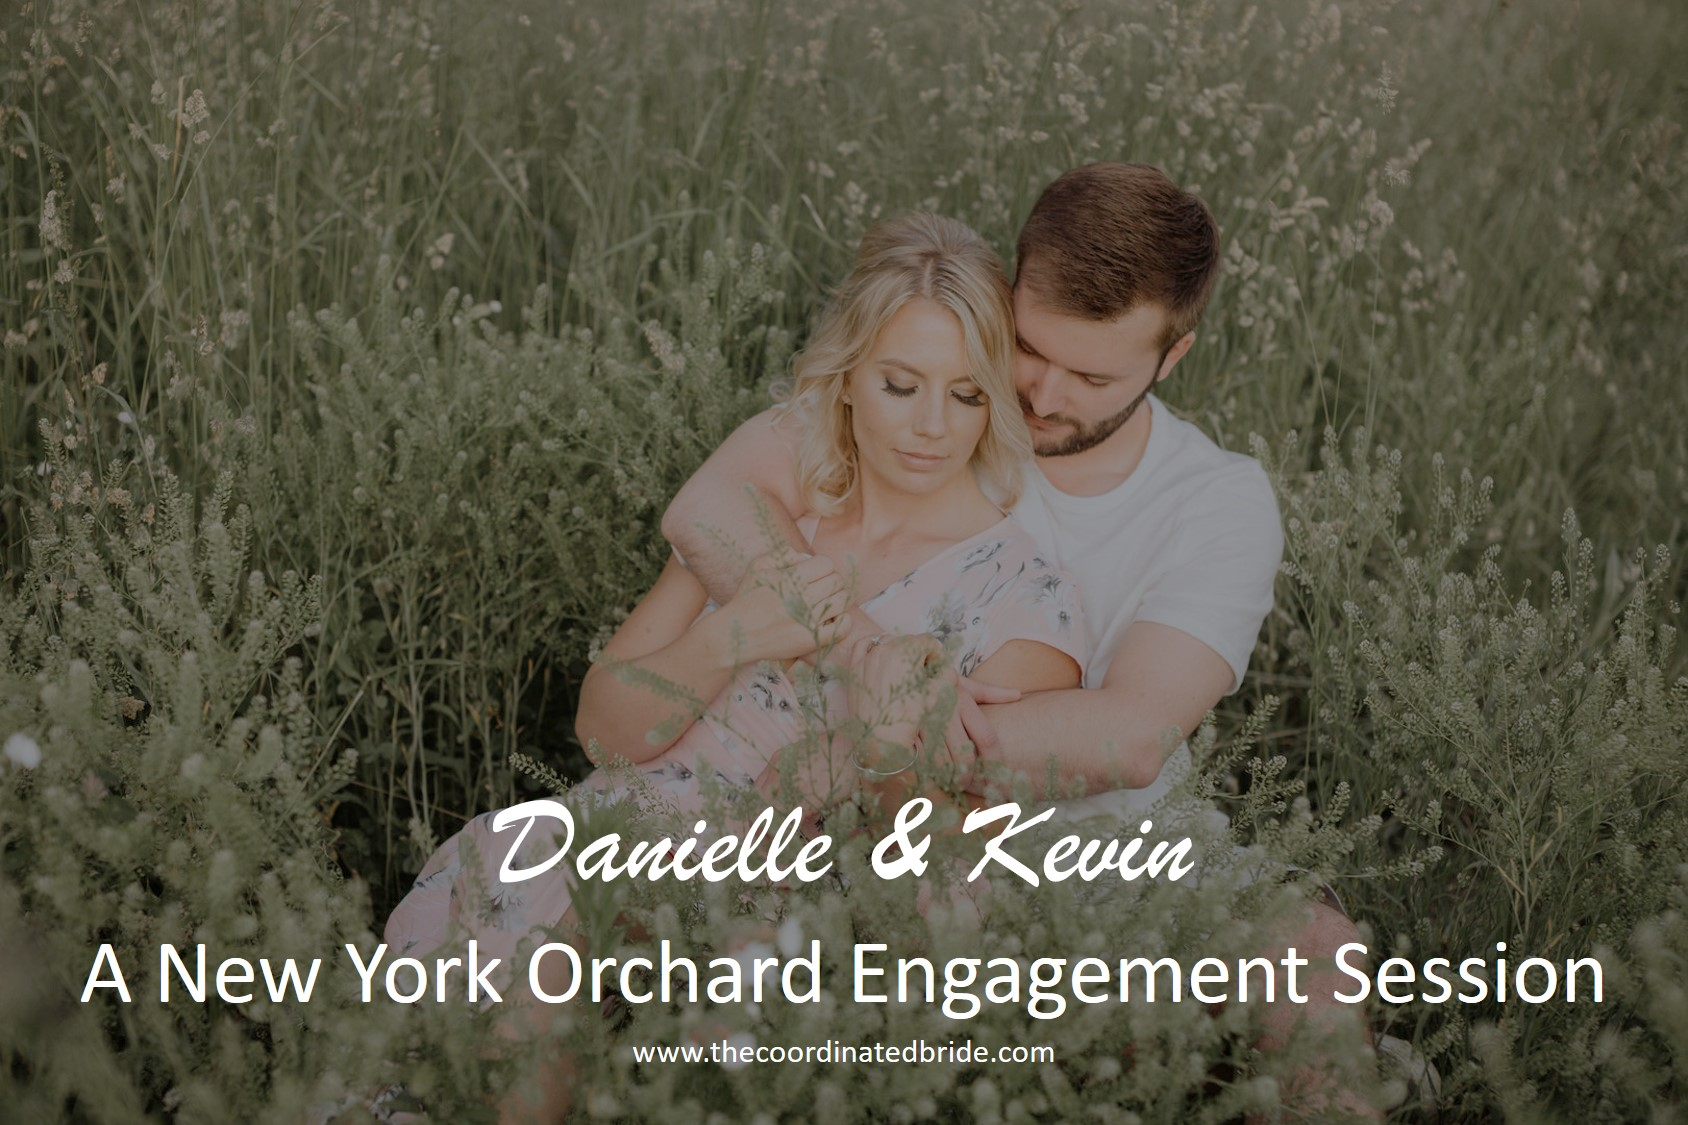 A NY Orchard Engagement Session at Indian Ladder Farms, Danielle & Kevin